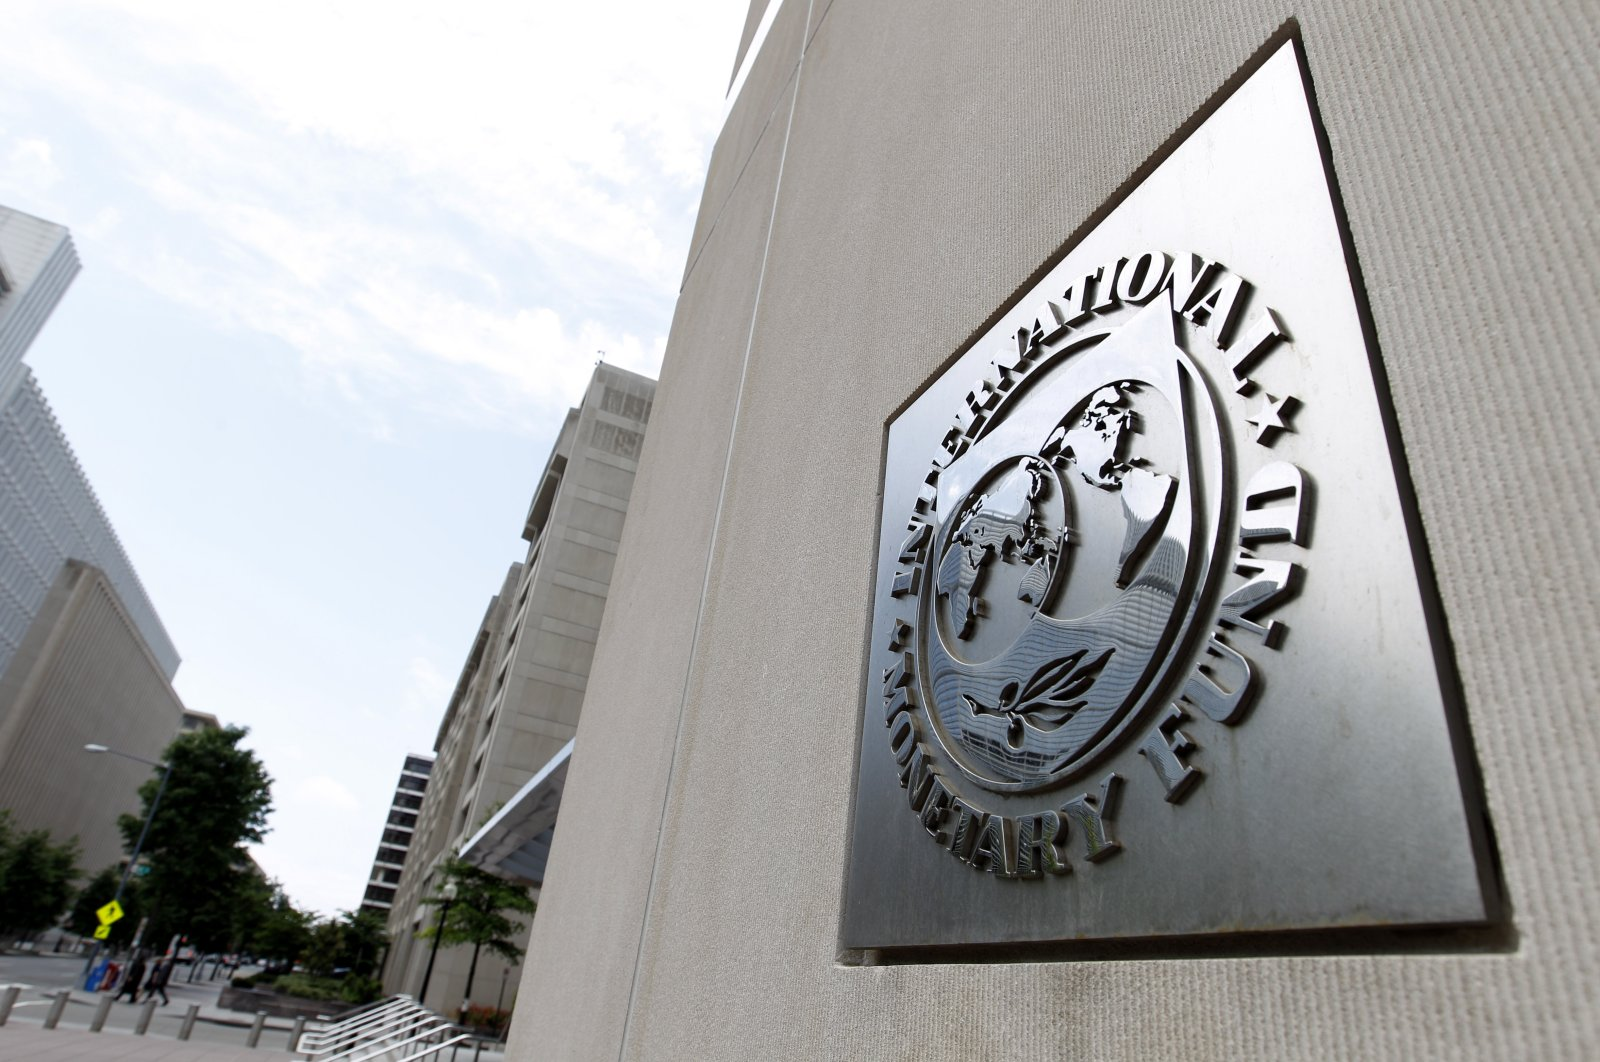 Pedestrians pass by the International Monetary Fund headquarters building in Washington, D.C., May 15, 2011. (AP Photo)